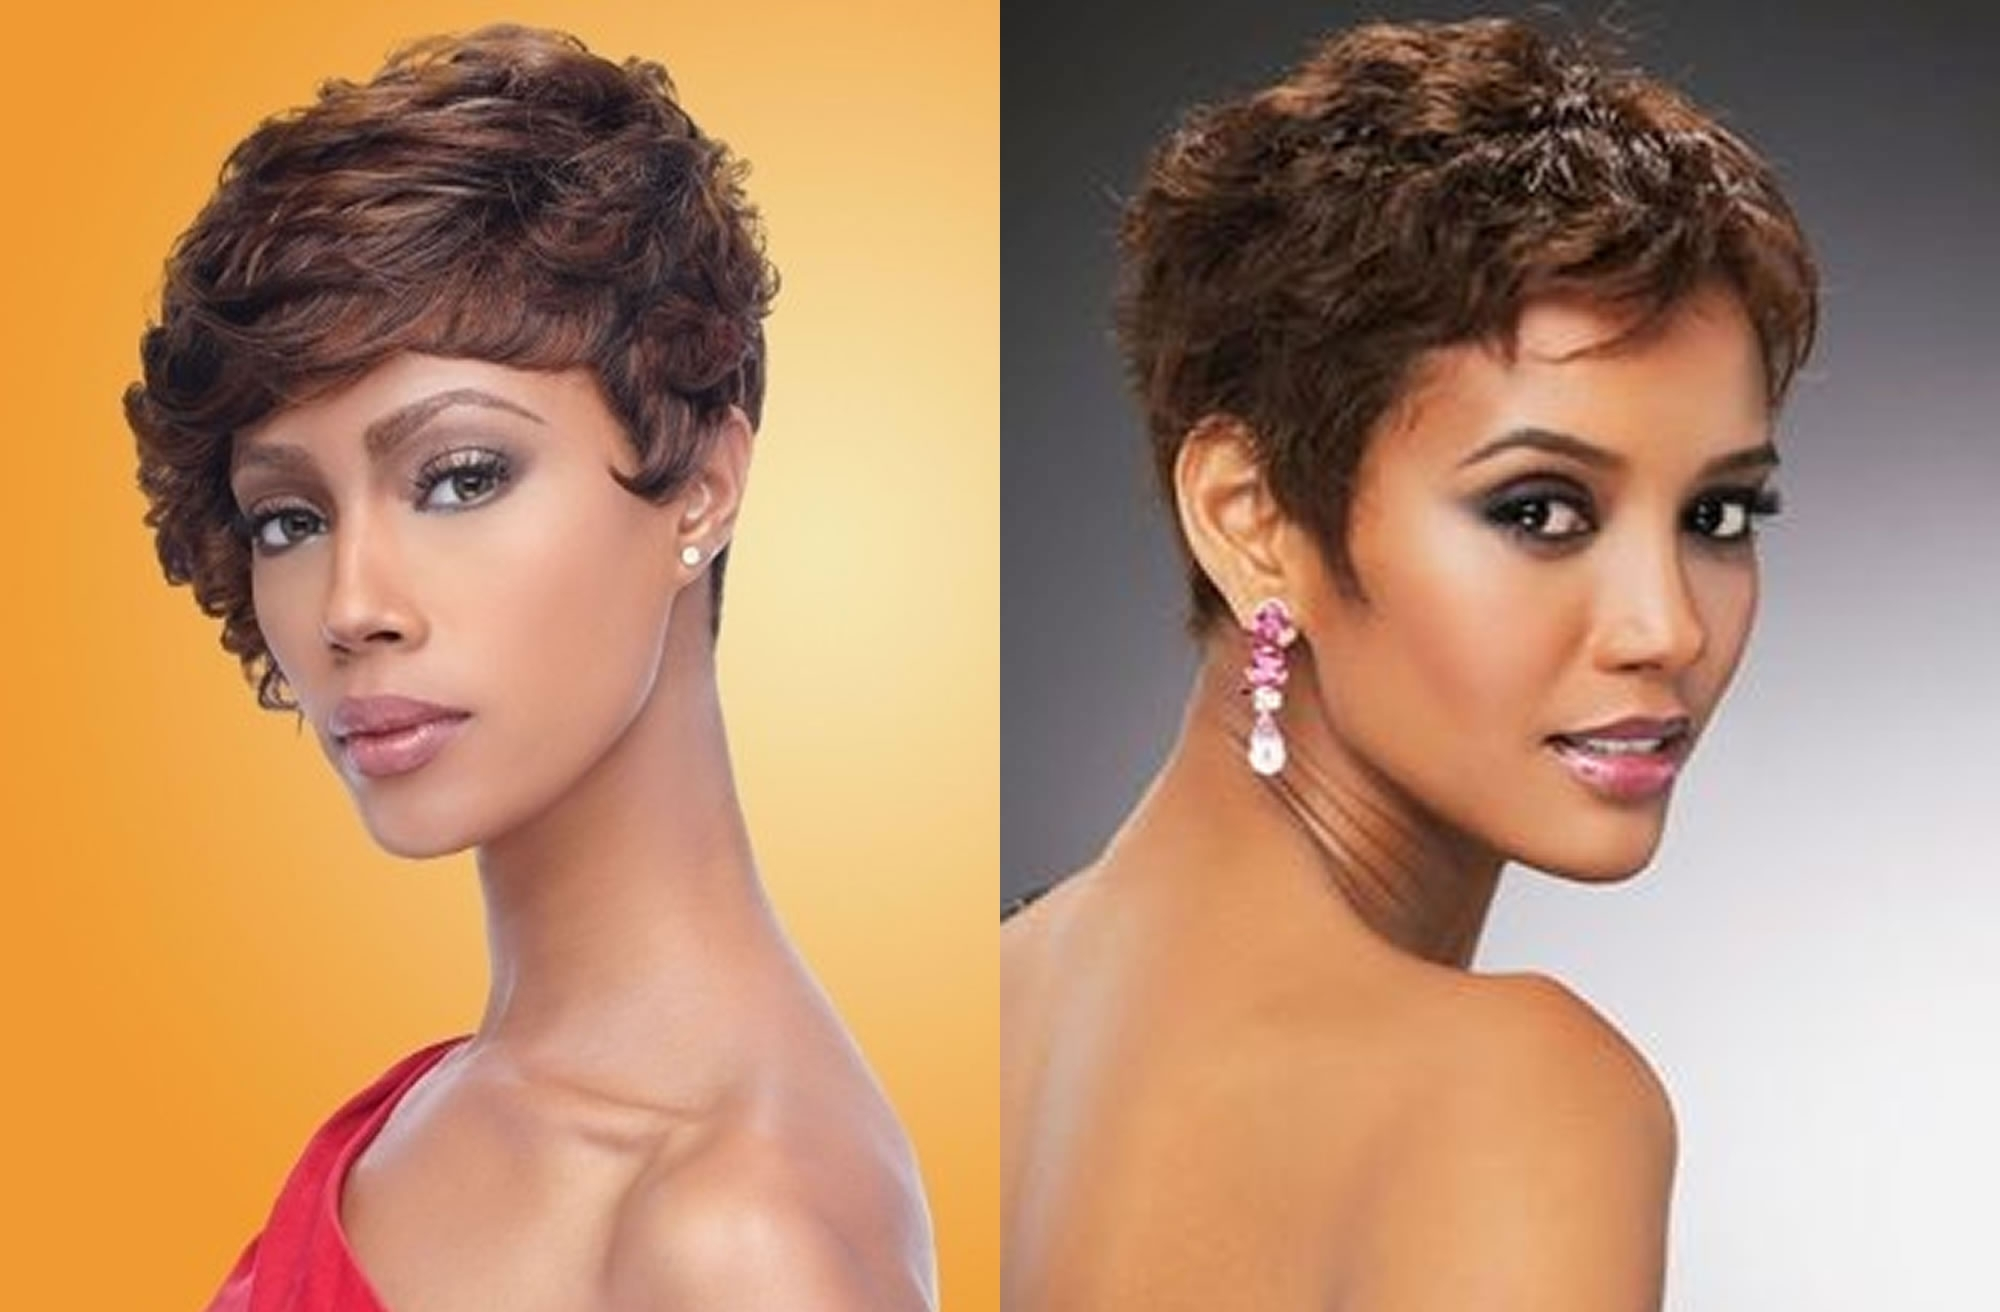 Widely Used Short Black Pixie Hairstyles For Curly Hair Pertaining To Pixie Hairstyles For Black Women – 60 Cool Short Haircuts For (View 2 of 20)